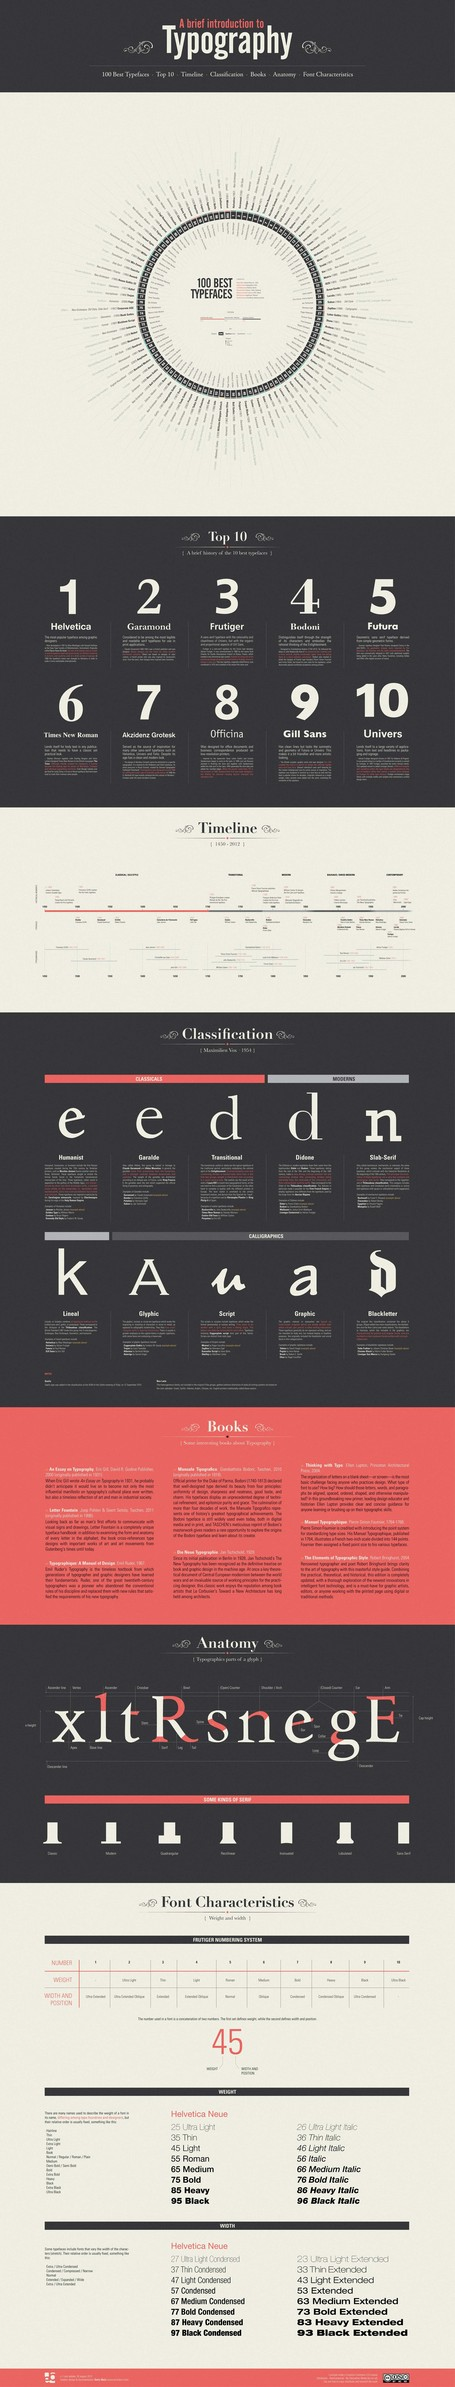 A Brief Introduction to Typography – Infographic | visual data | Scoop.it